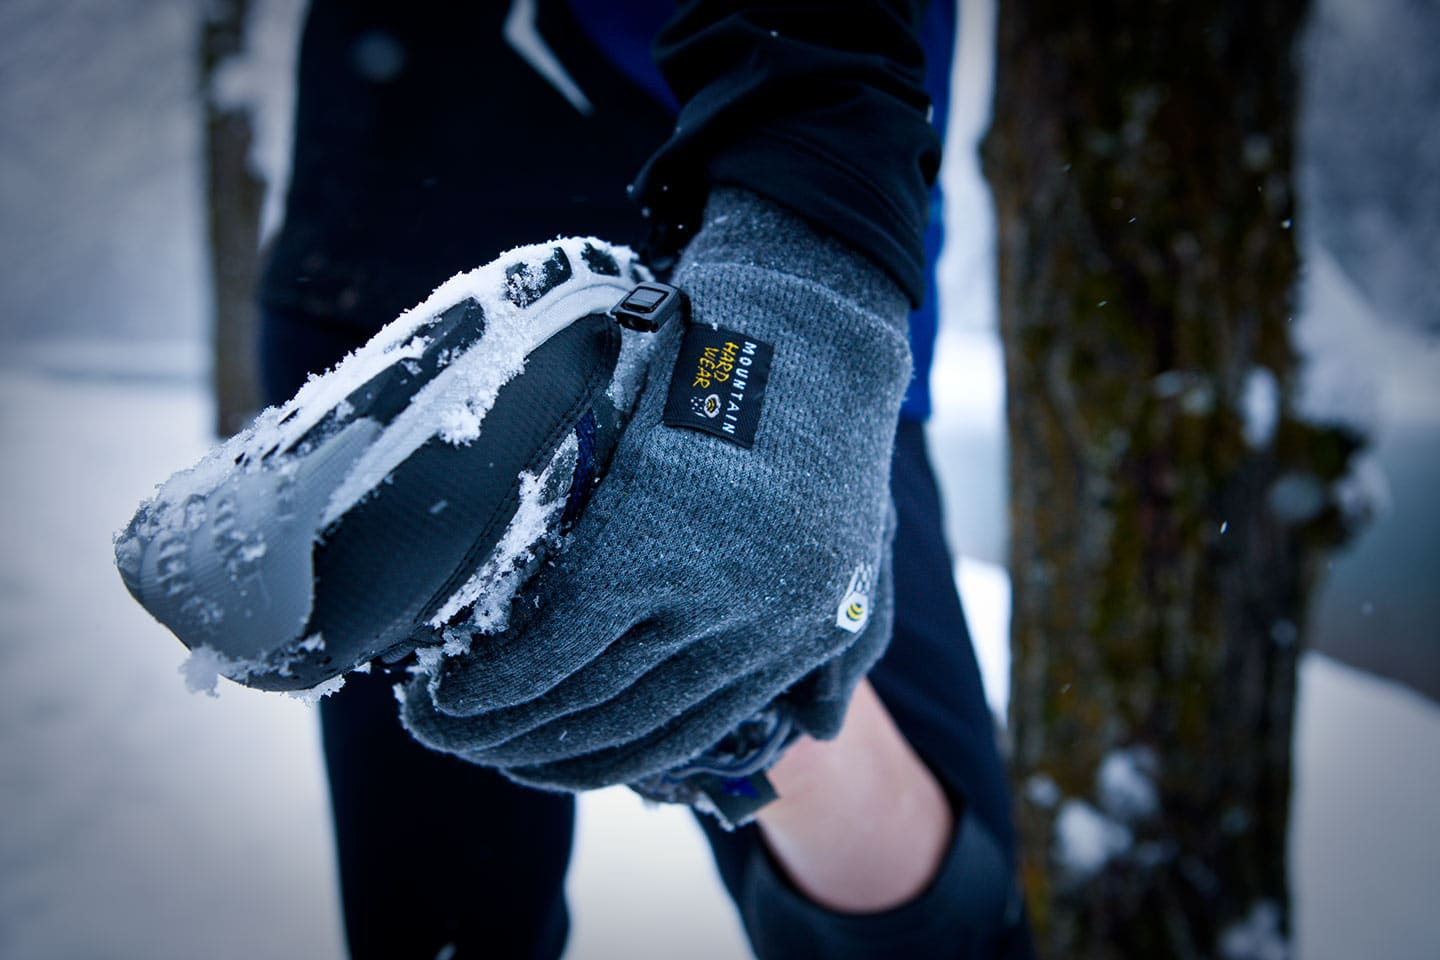 Image of Leg Stretch Close Up Perspective of Hand Athletic Mountain Hard Wear Glove